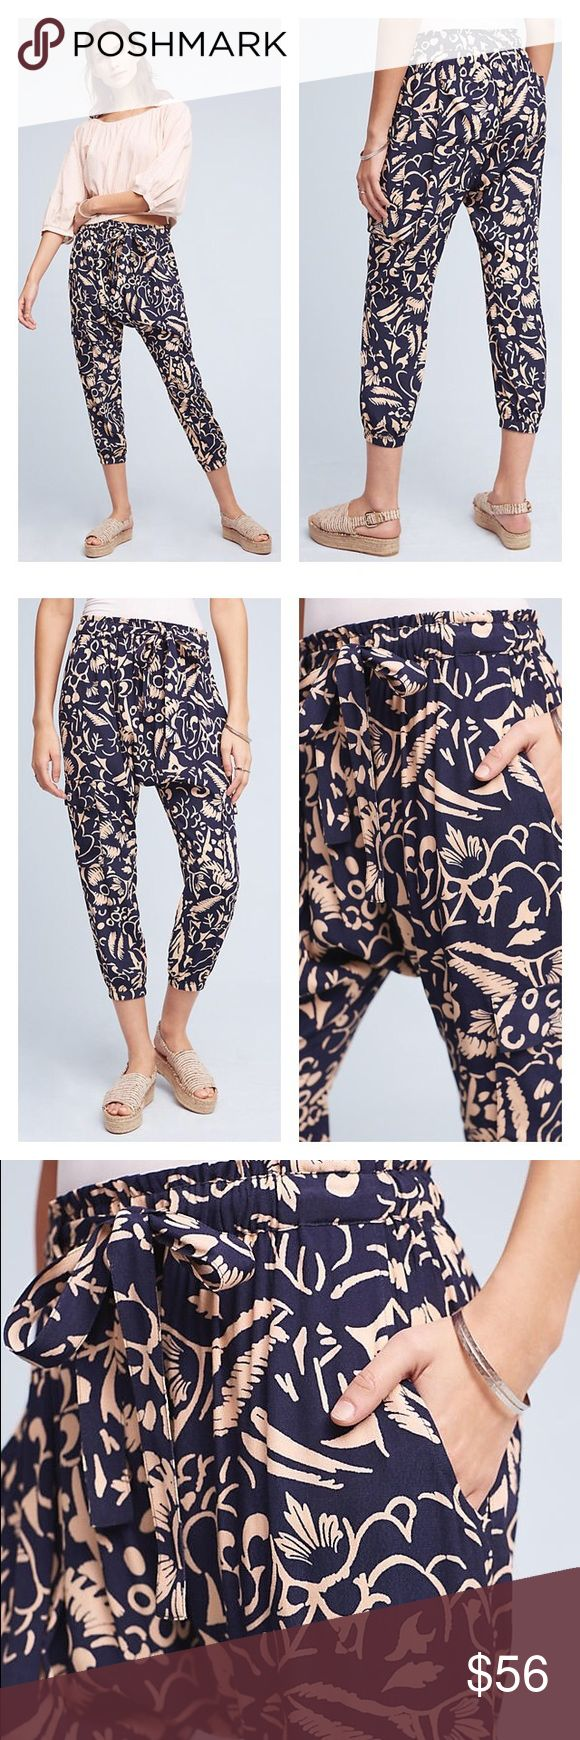 "Anthropologie Harem Pants Loosely defined cargo joggers crafted from super-soft materials in a printed design. Exceptional pants! Perfect brand new condition, never worn.  ☀️️Viscose ☀️️Drop rise ☀️️Front slant, back patch pockets ☀️️Pull-on styling ☀️️Hand wash ☀️️By Hei Hei ☀️️24"" inseam Anthropologie Pants Track Pants & Joggers"